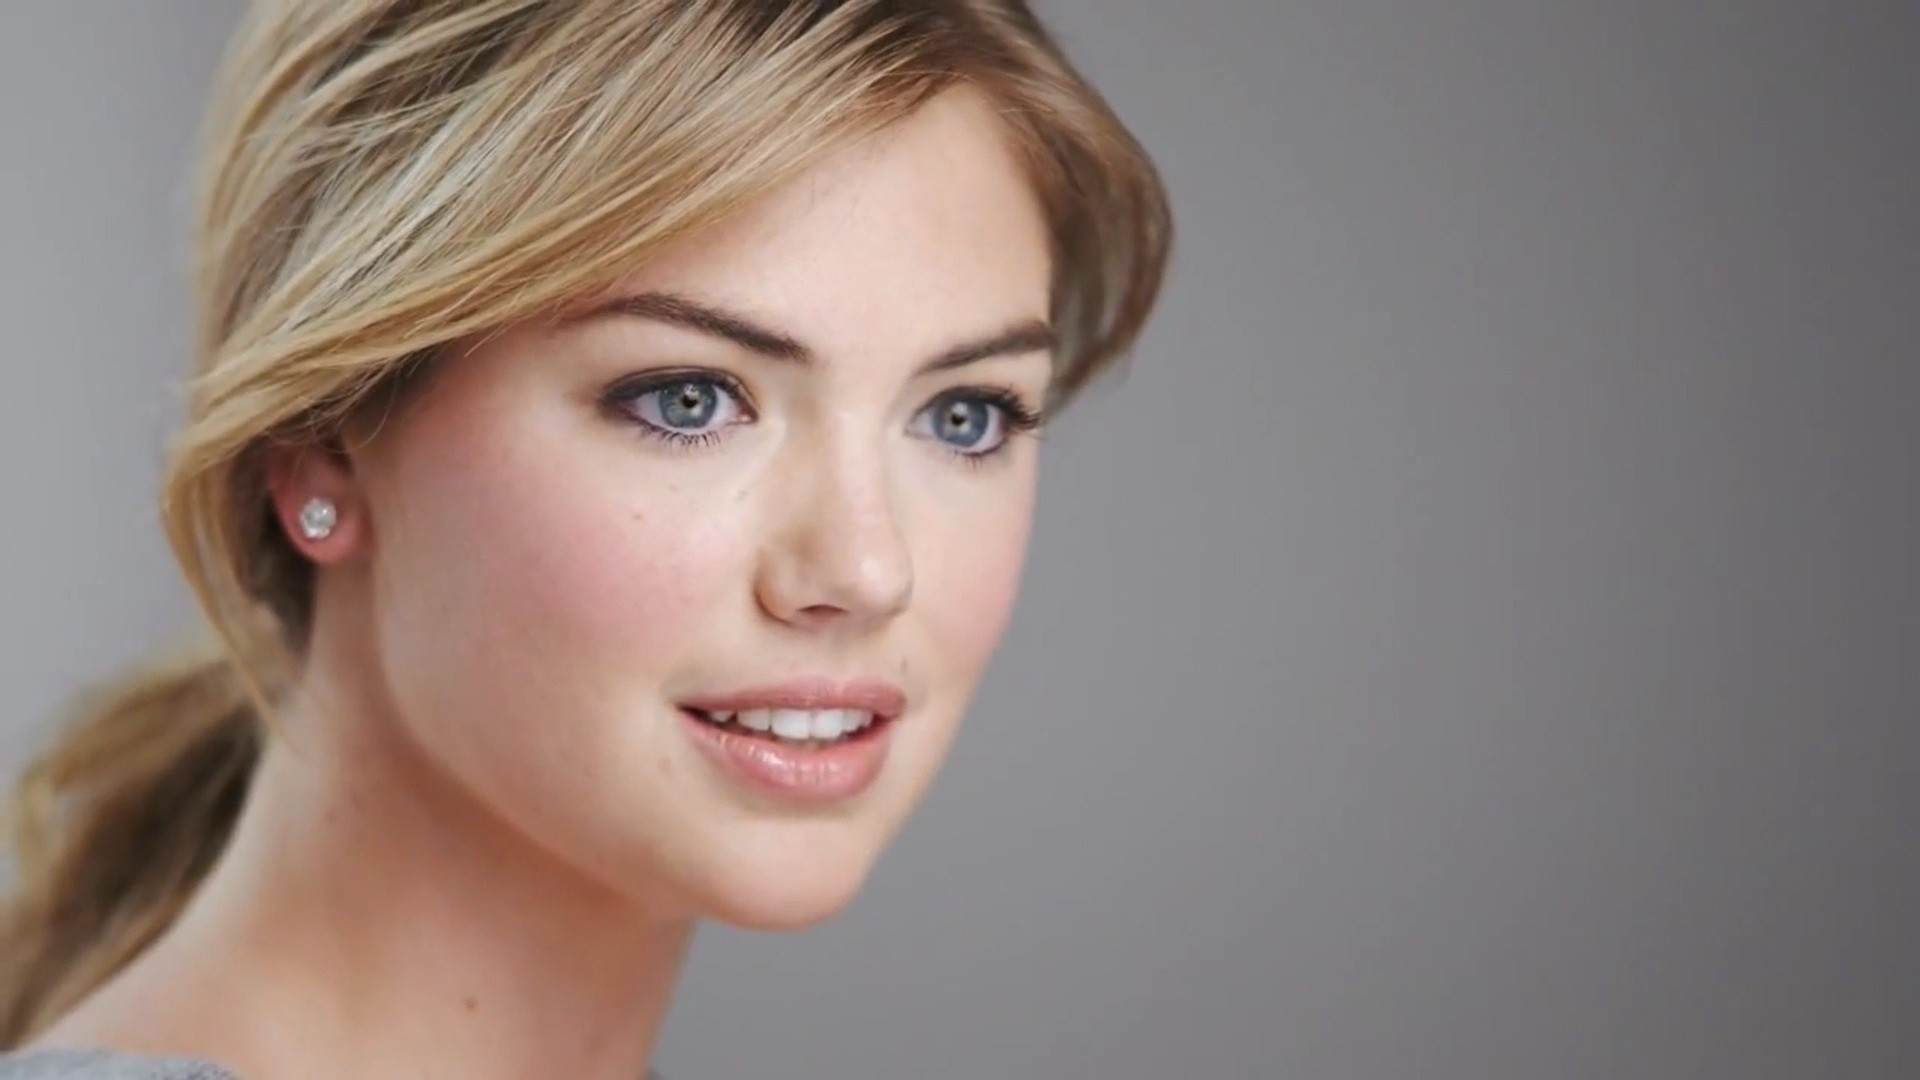 Kate Upton Wallpapers Hd 1080p 81 Background Pictures